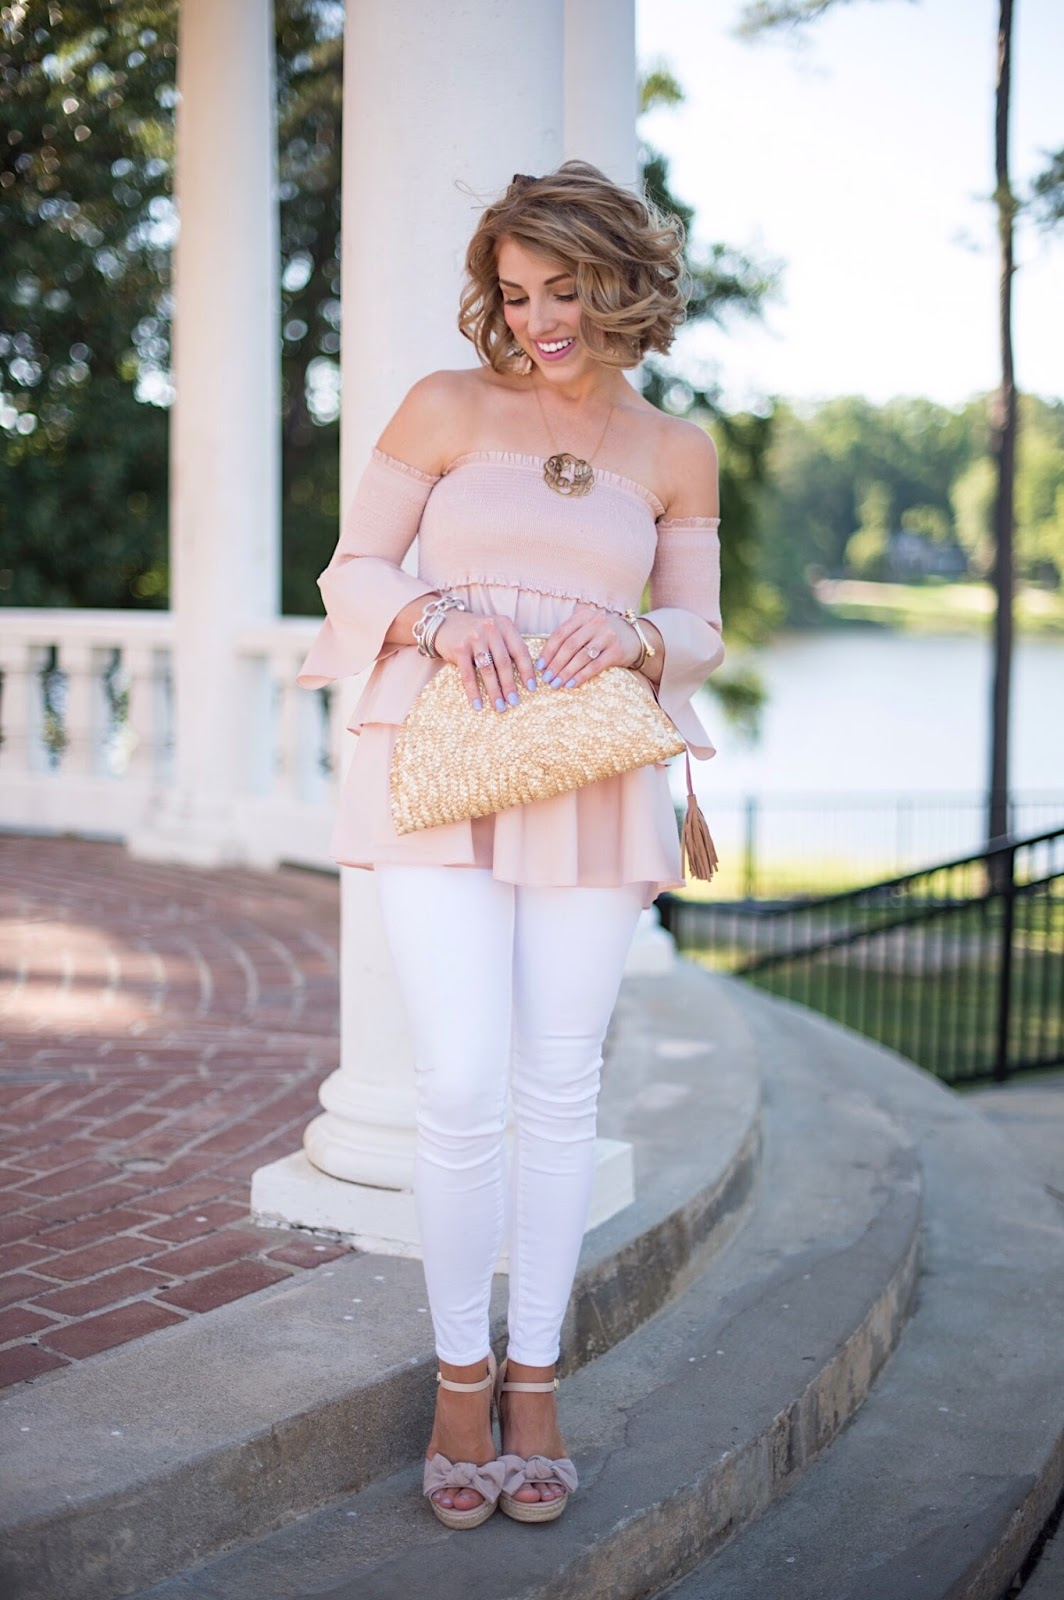 Half-moon Straw Clutch - Click through to see more on Something Delightful Blog :)